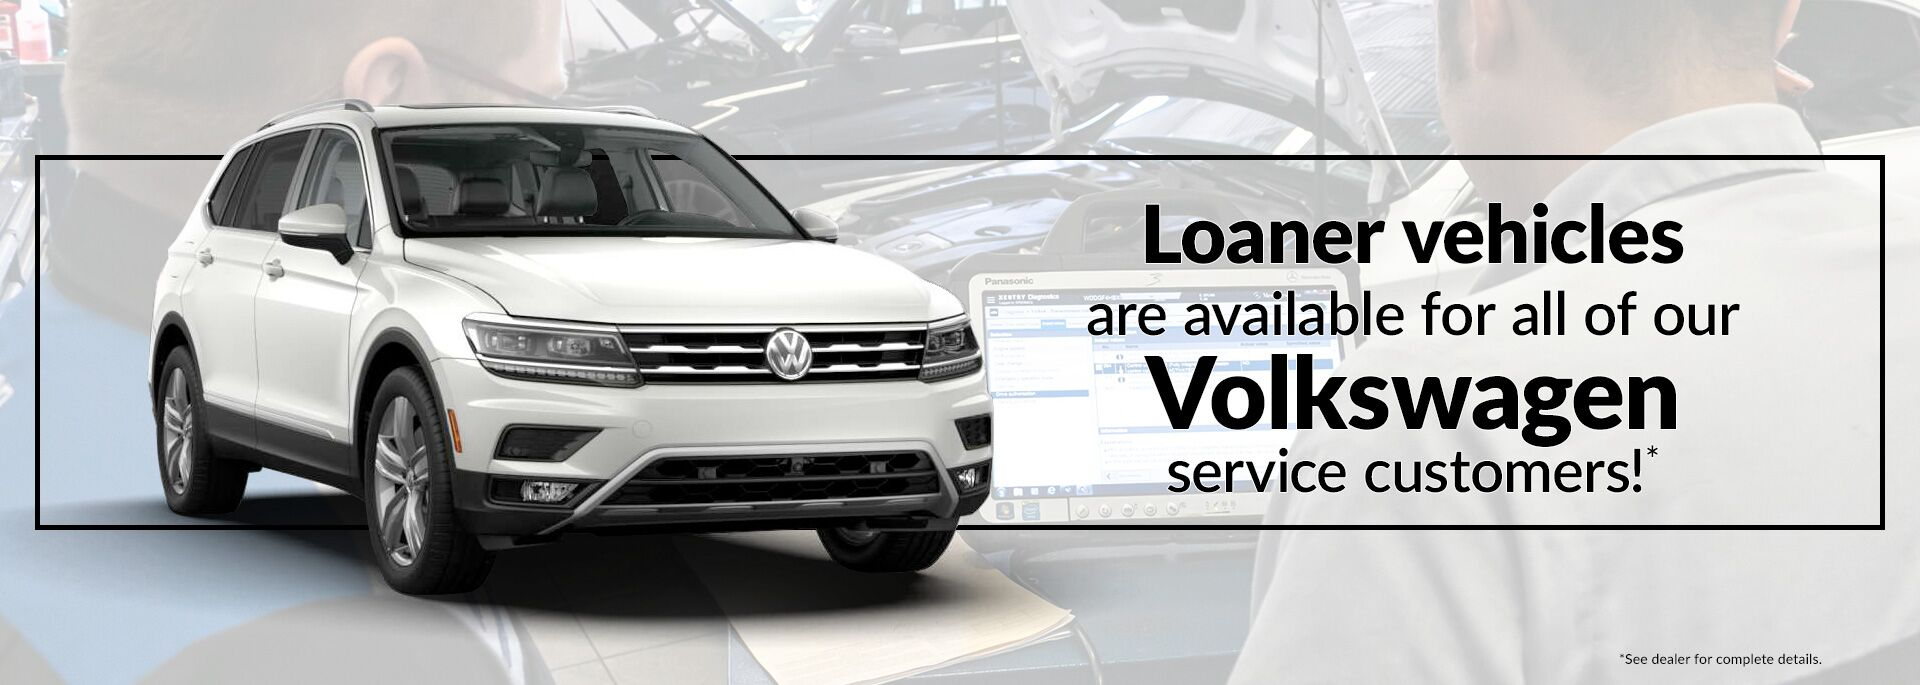 Loaner Vehicles available Hoy Volkswagen Service Department in El Paso, TX